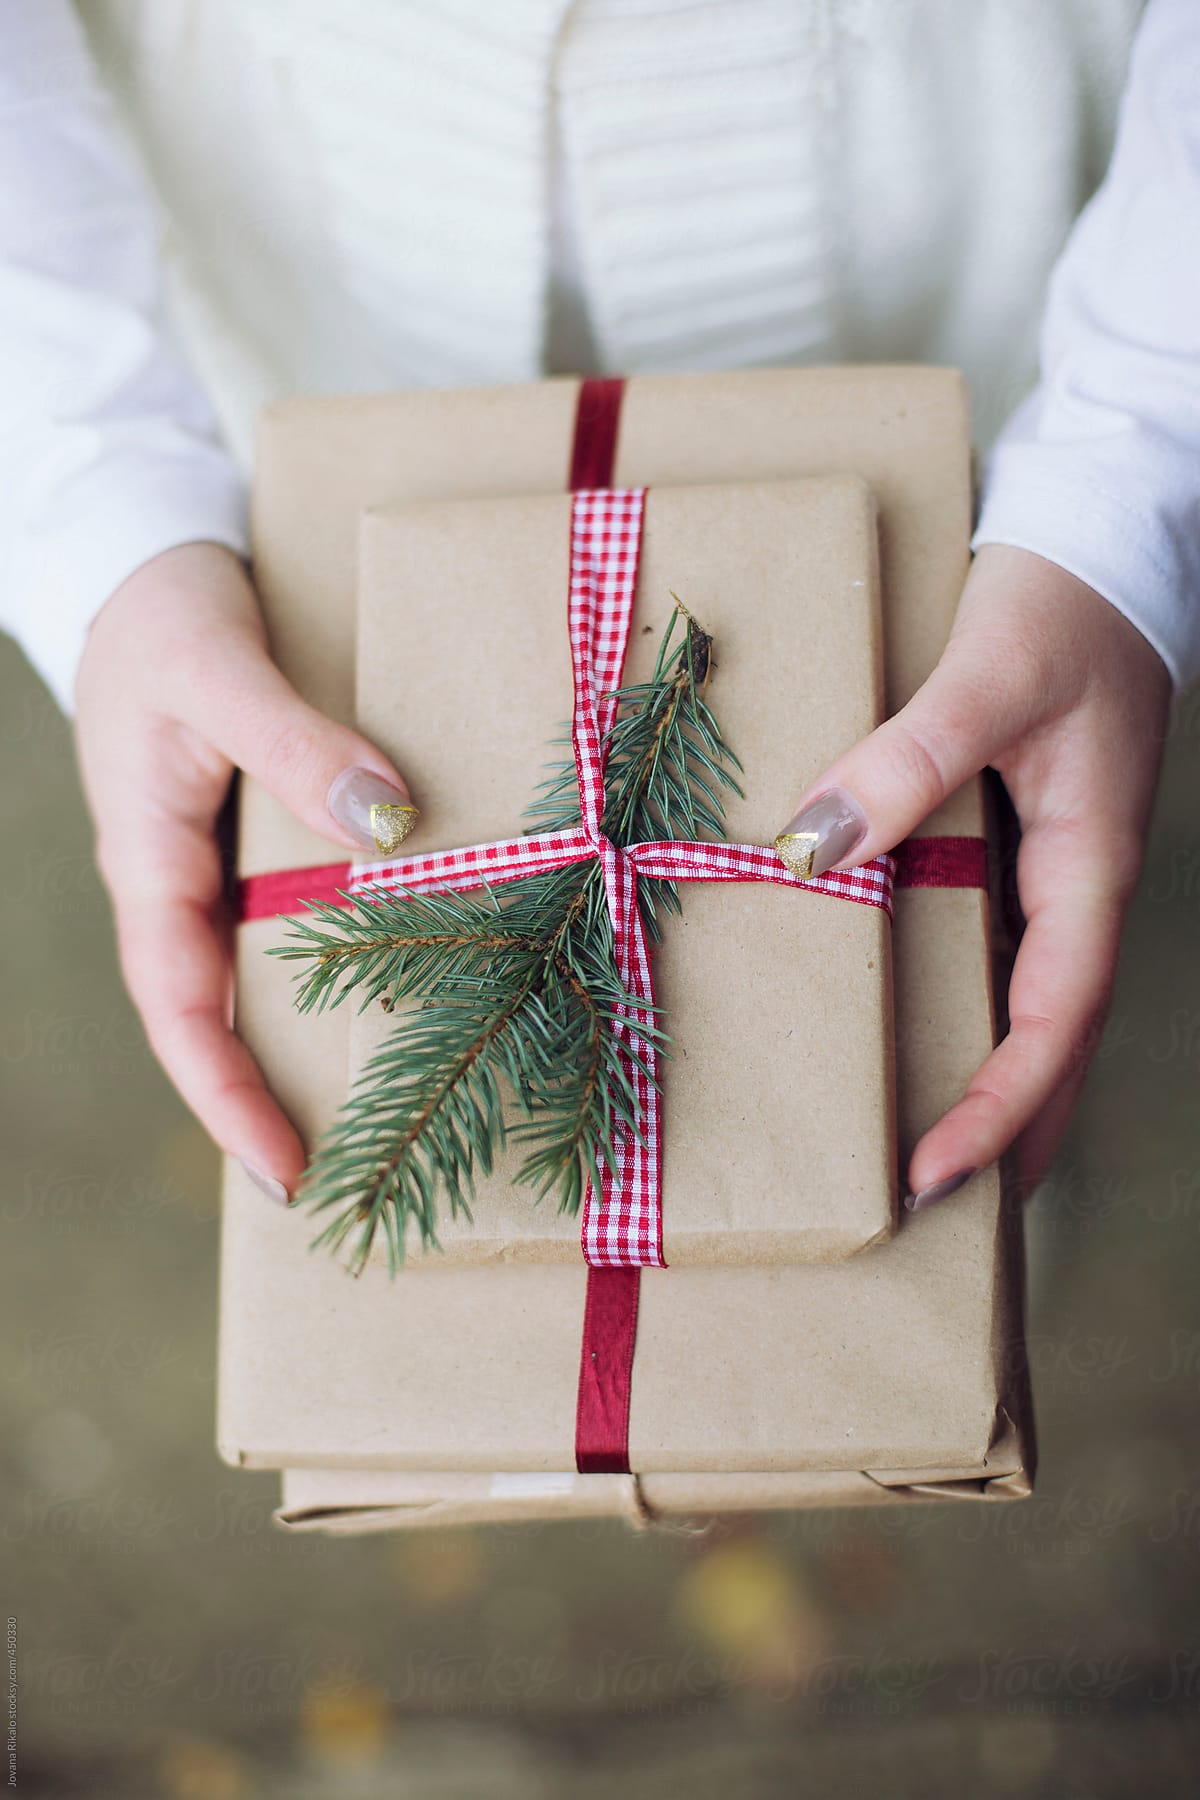 Woman Holding Christmas Gifts | Stocksy United